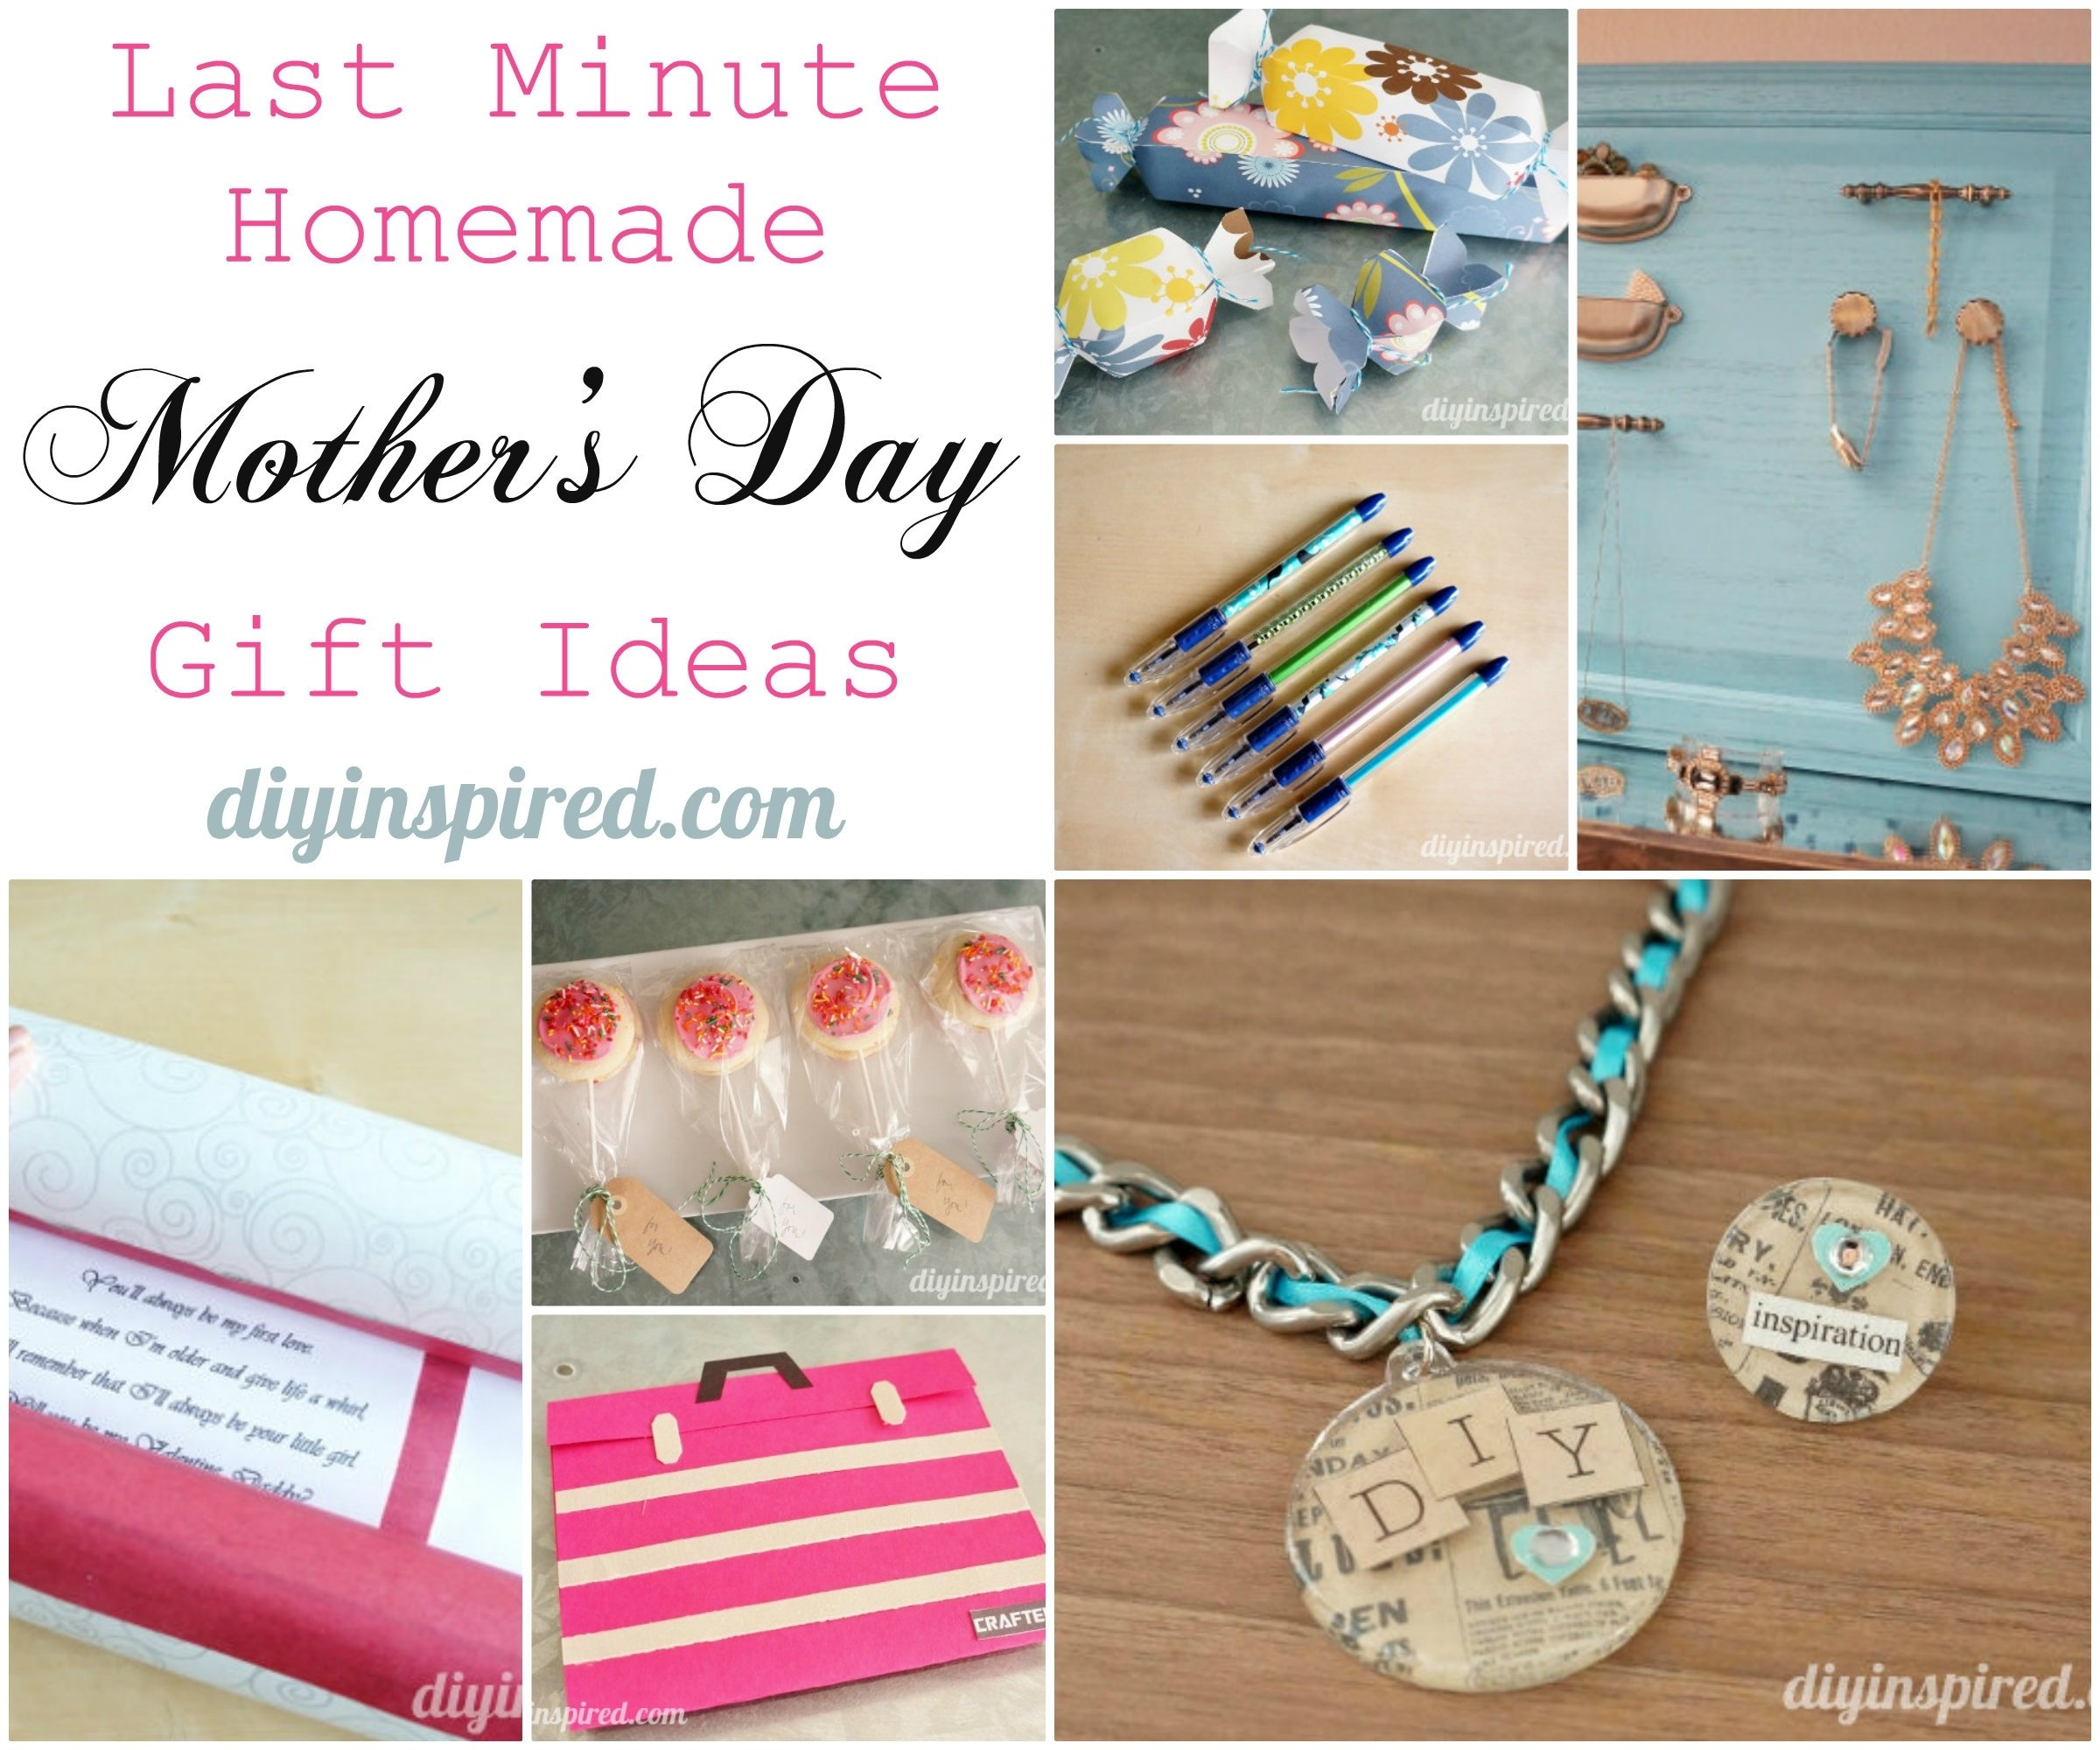 10 Most Popular Mother Day Homemade Gift Ideas last minute homemade mothers day gift ideas diy inspired 1